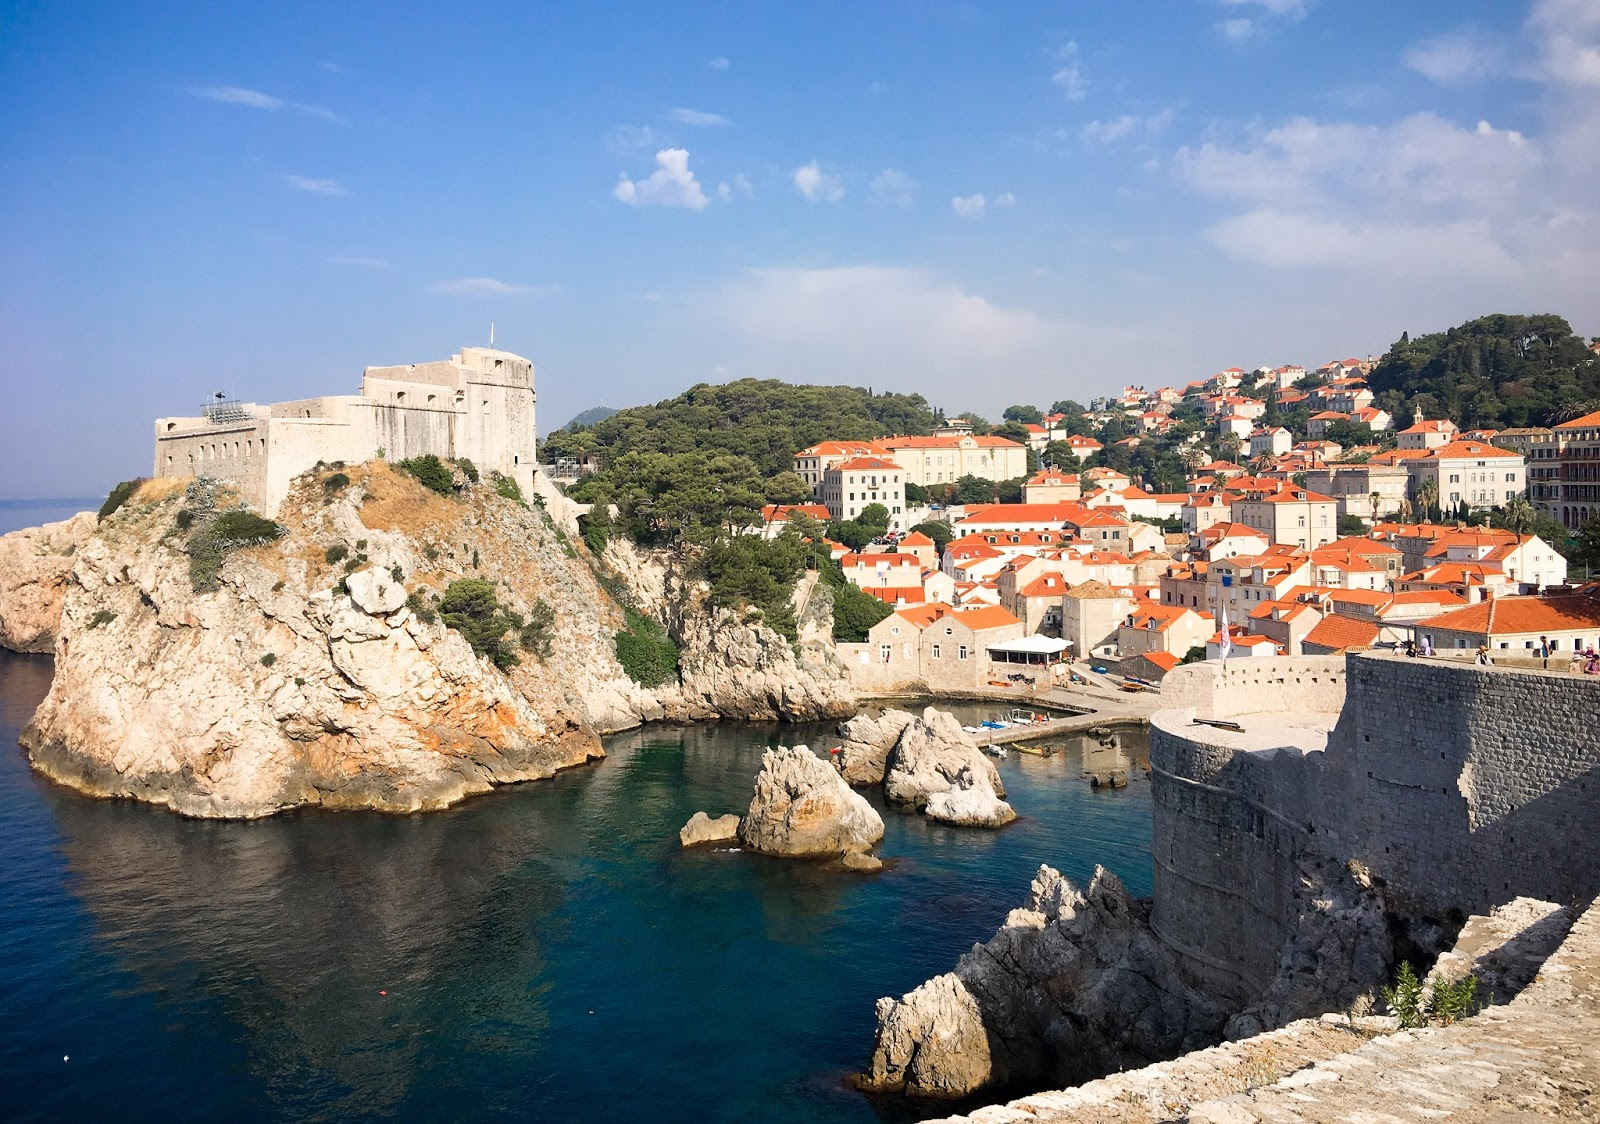 A view of Dubrovnik's old city walls.